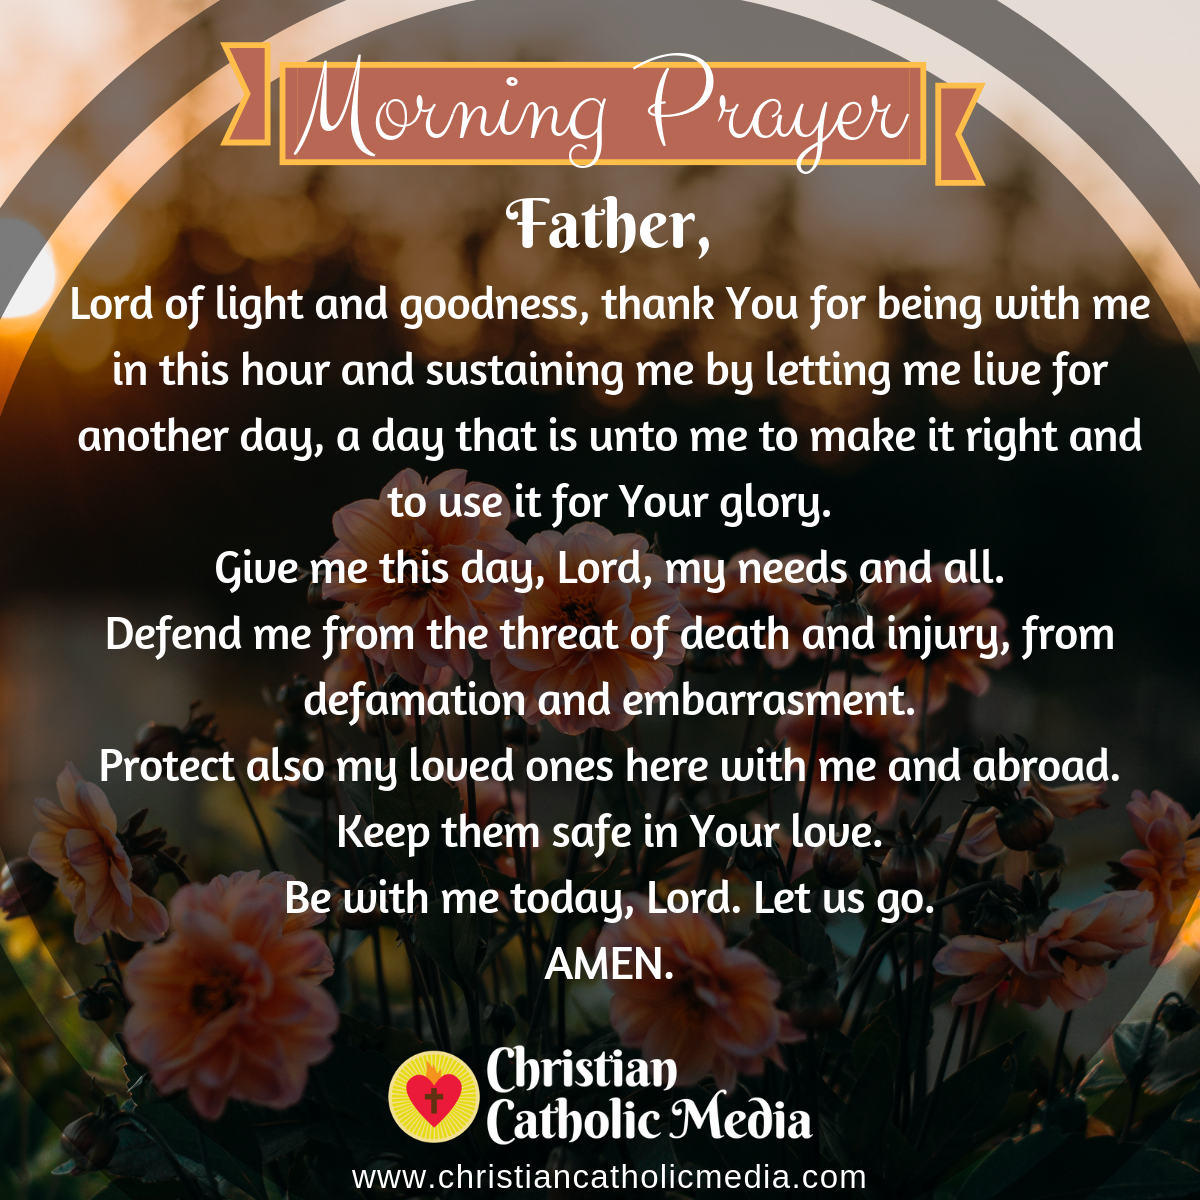 Catholic Morning Prayer Monday 11-9-2020